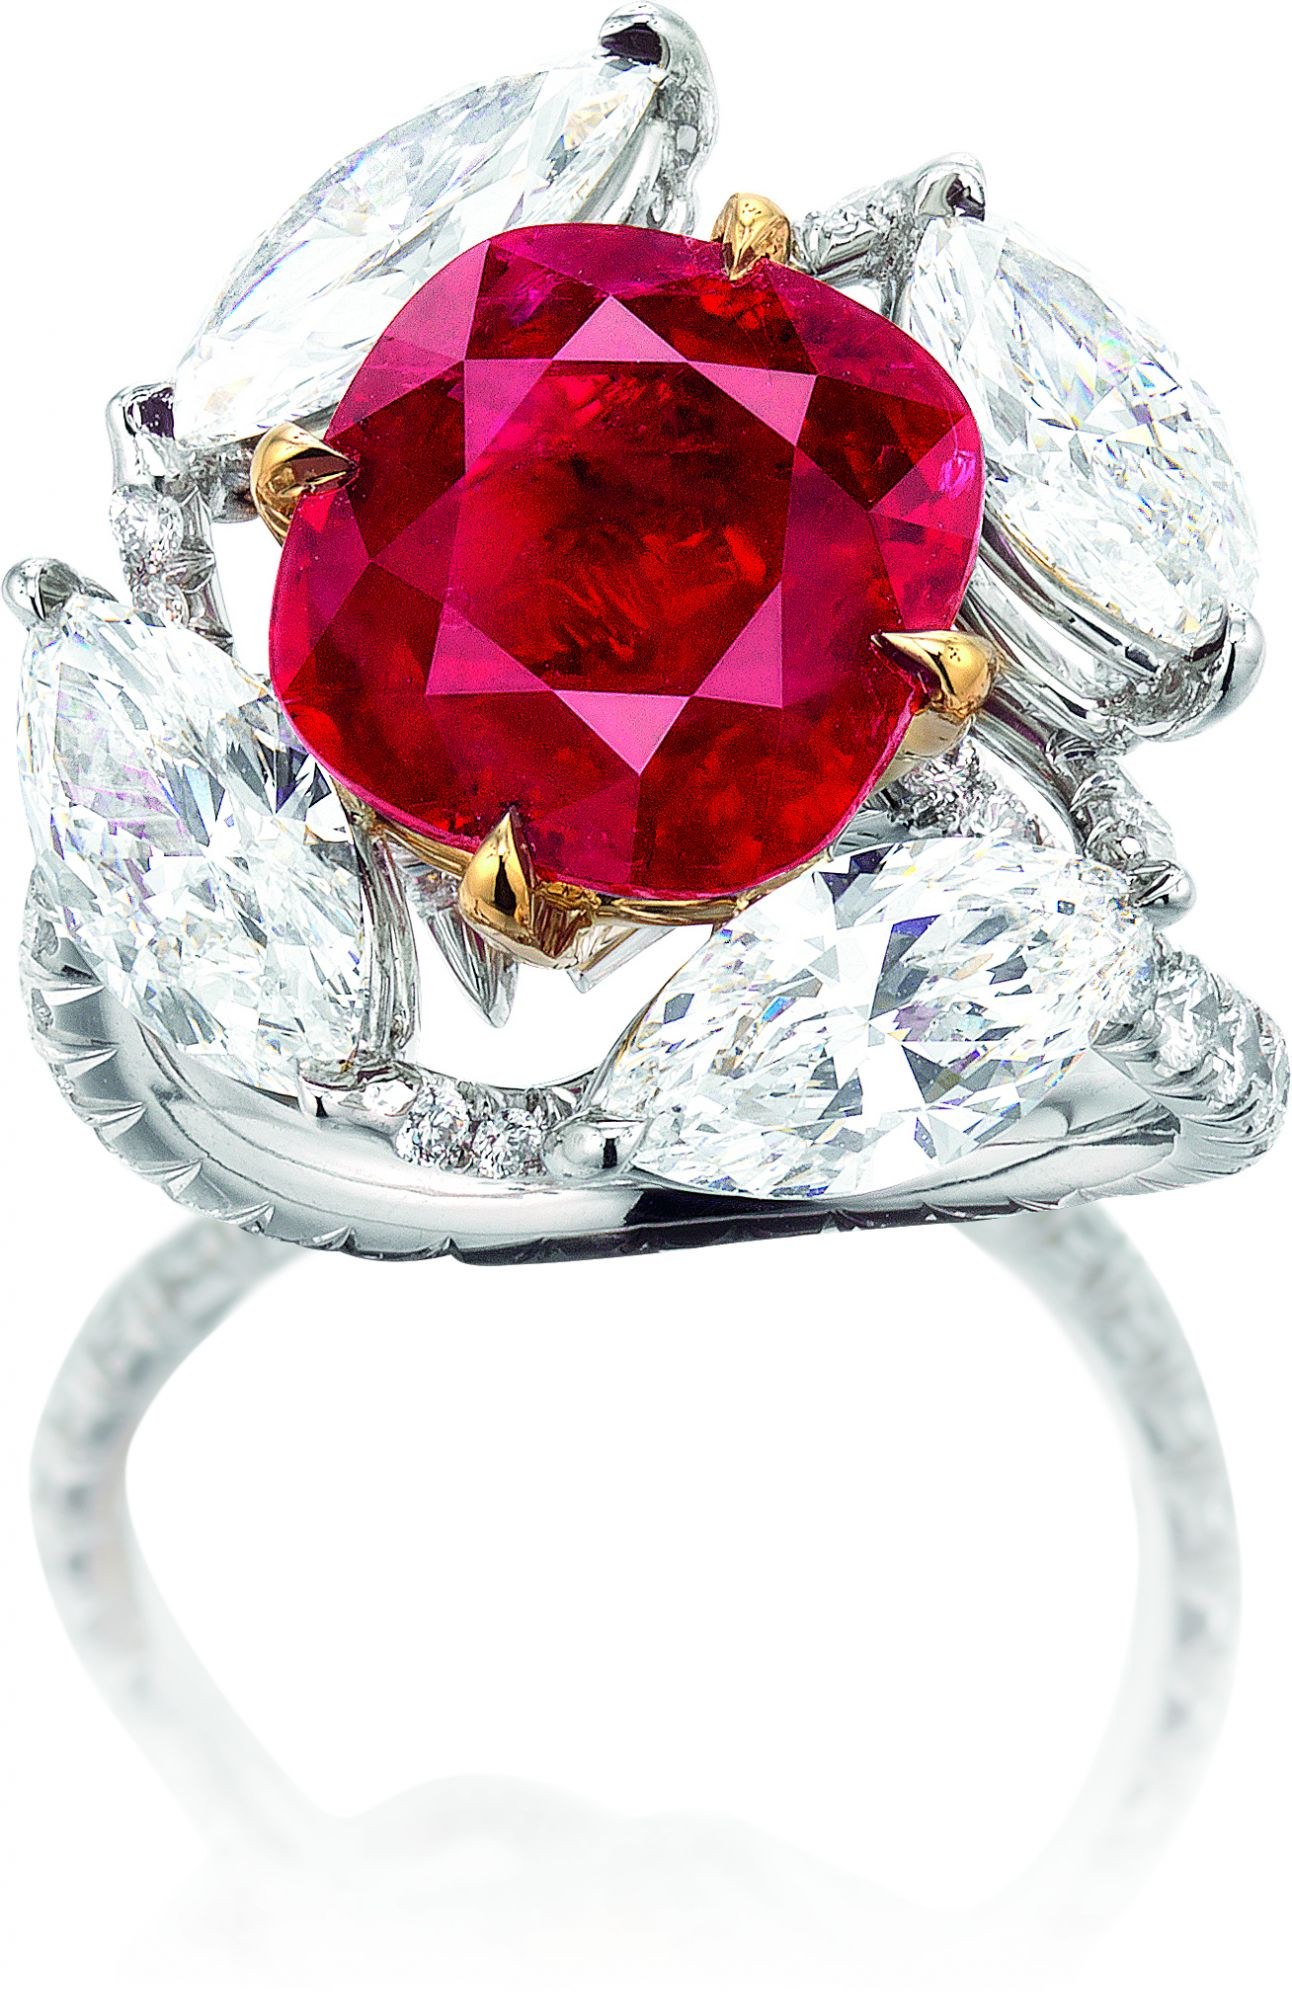 and natural lotfinder lot jewelry ring a engagement by rings hgk rare harry winston details ruby diamond